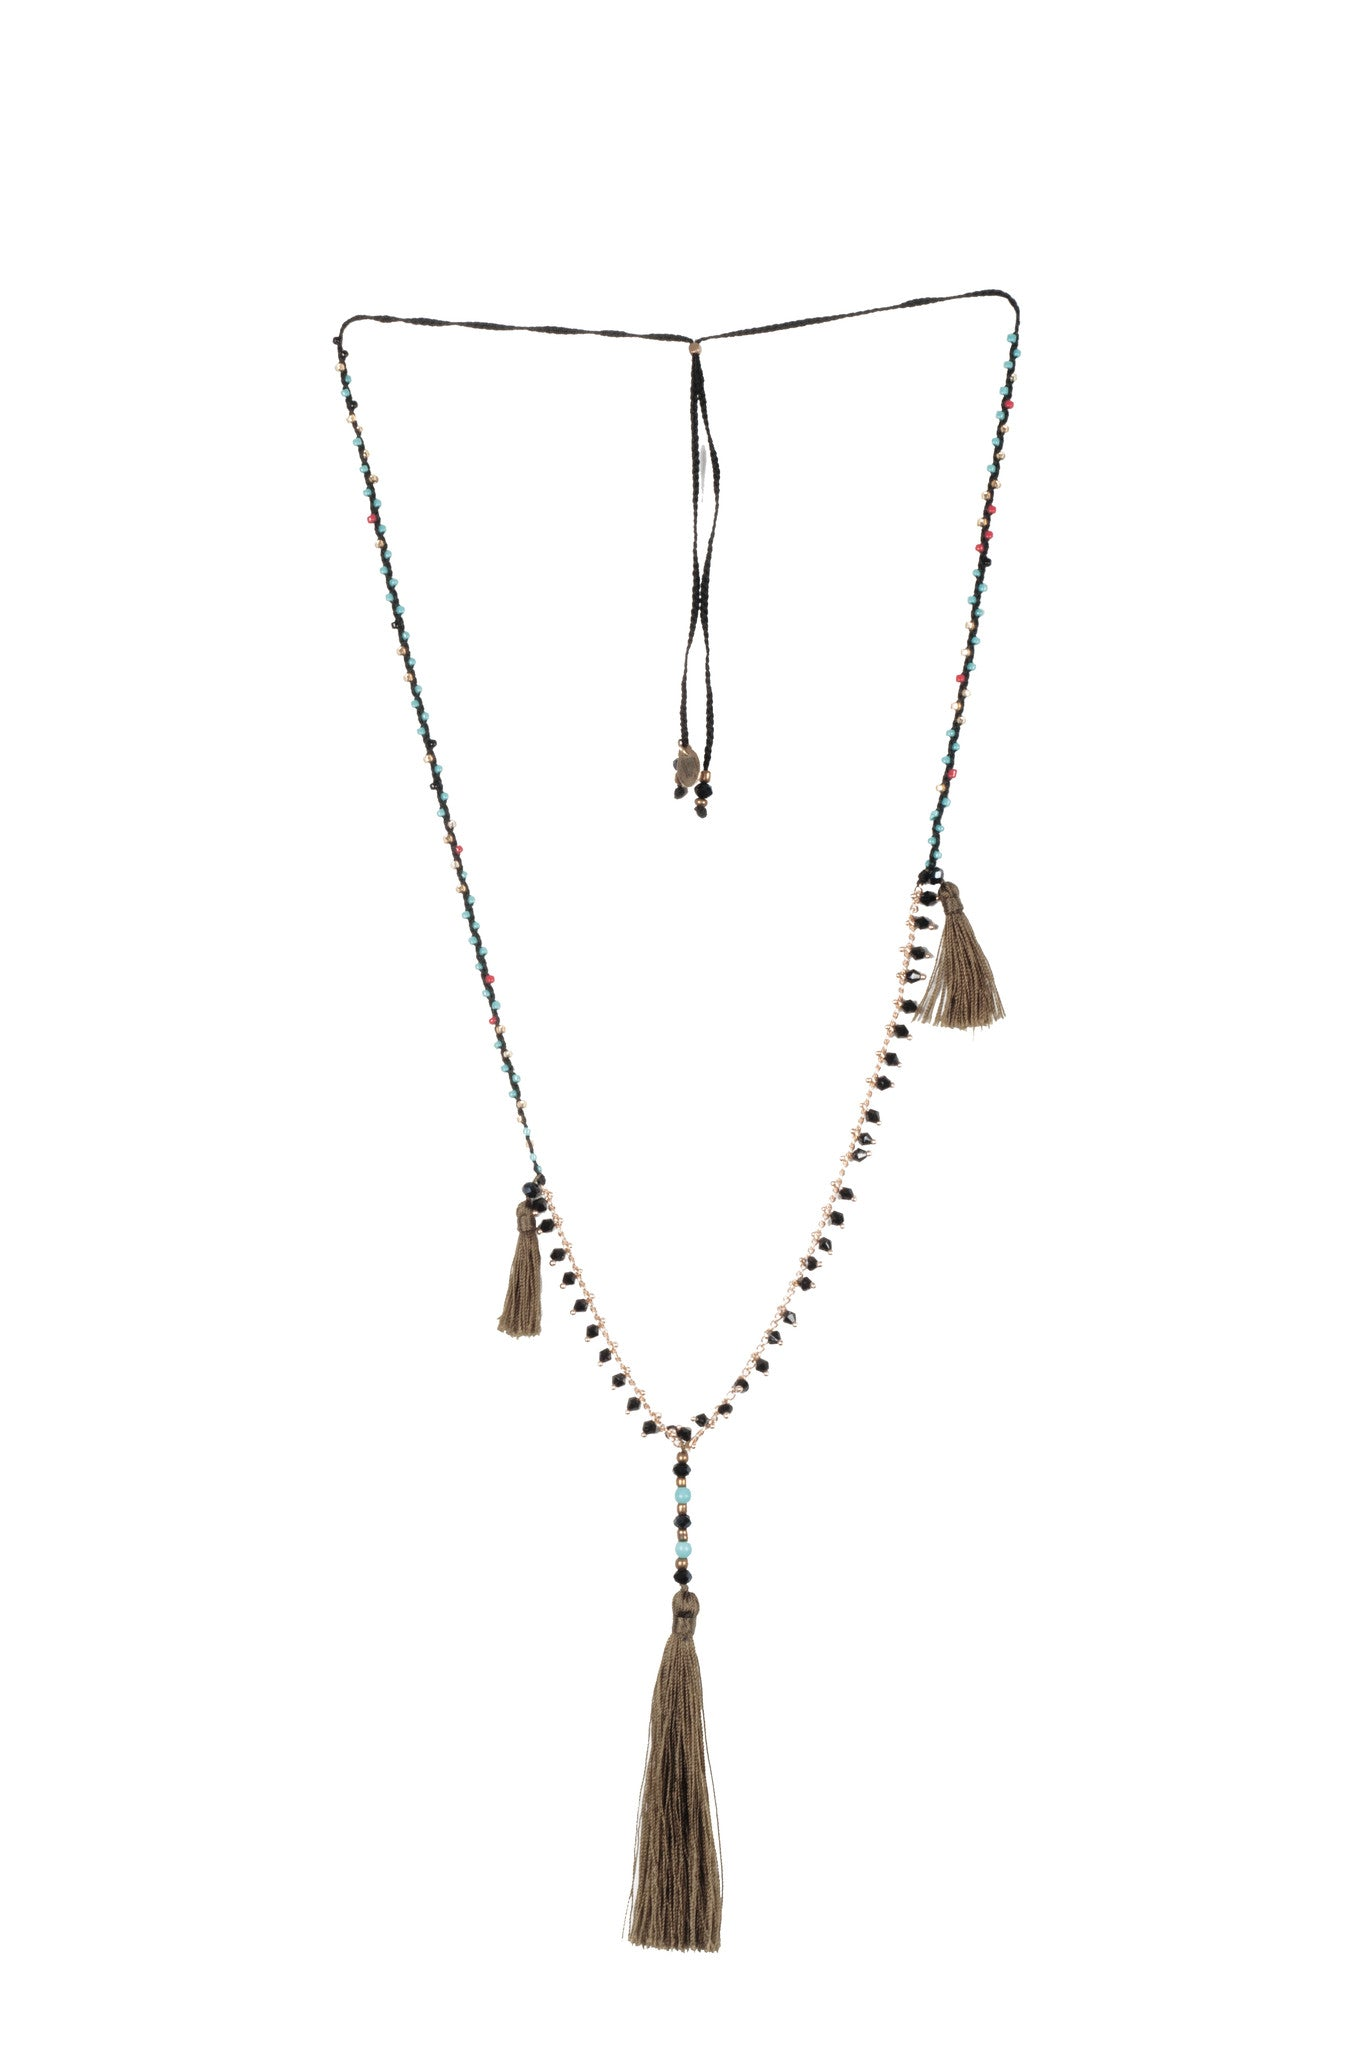 Khaki Adjustable Necklace made of delicate crystal pearls, gold chain completed by three vibrant nylon tassels